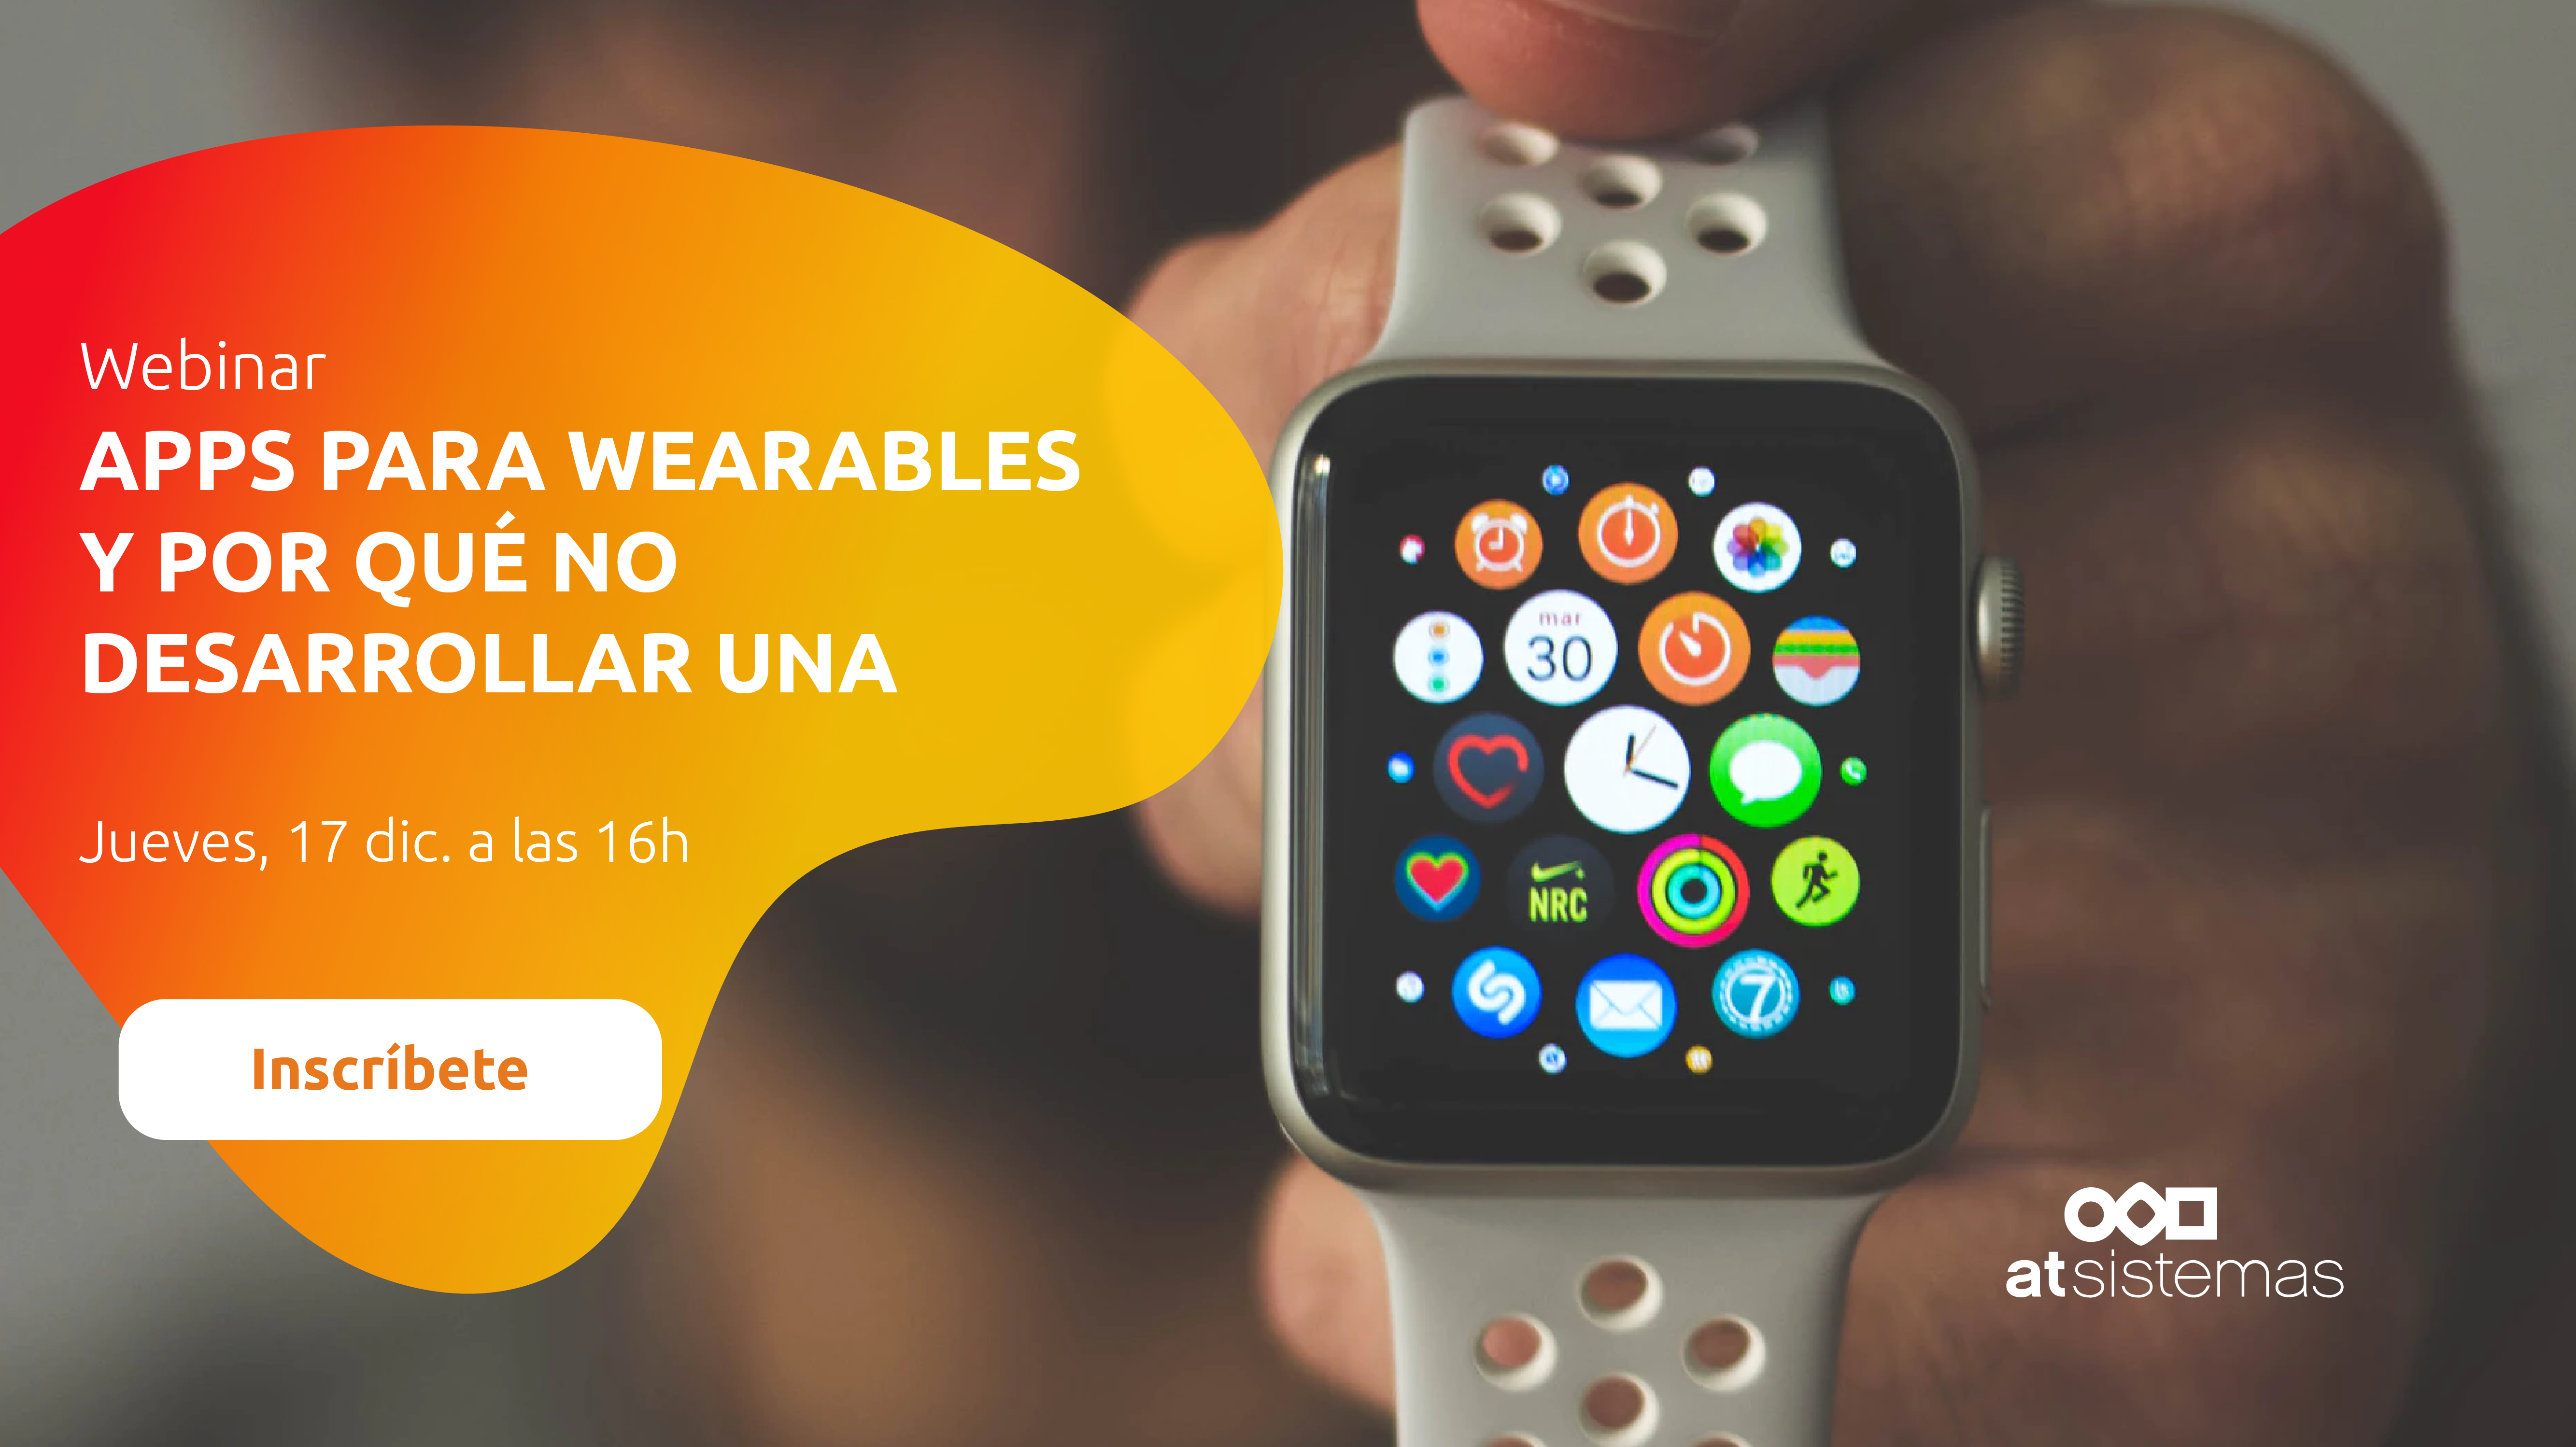 Apps para wearables